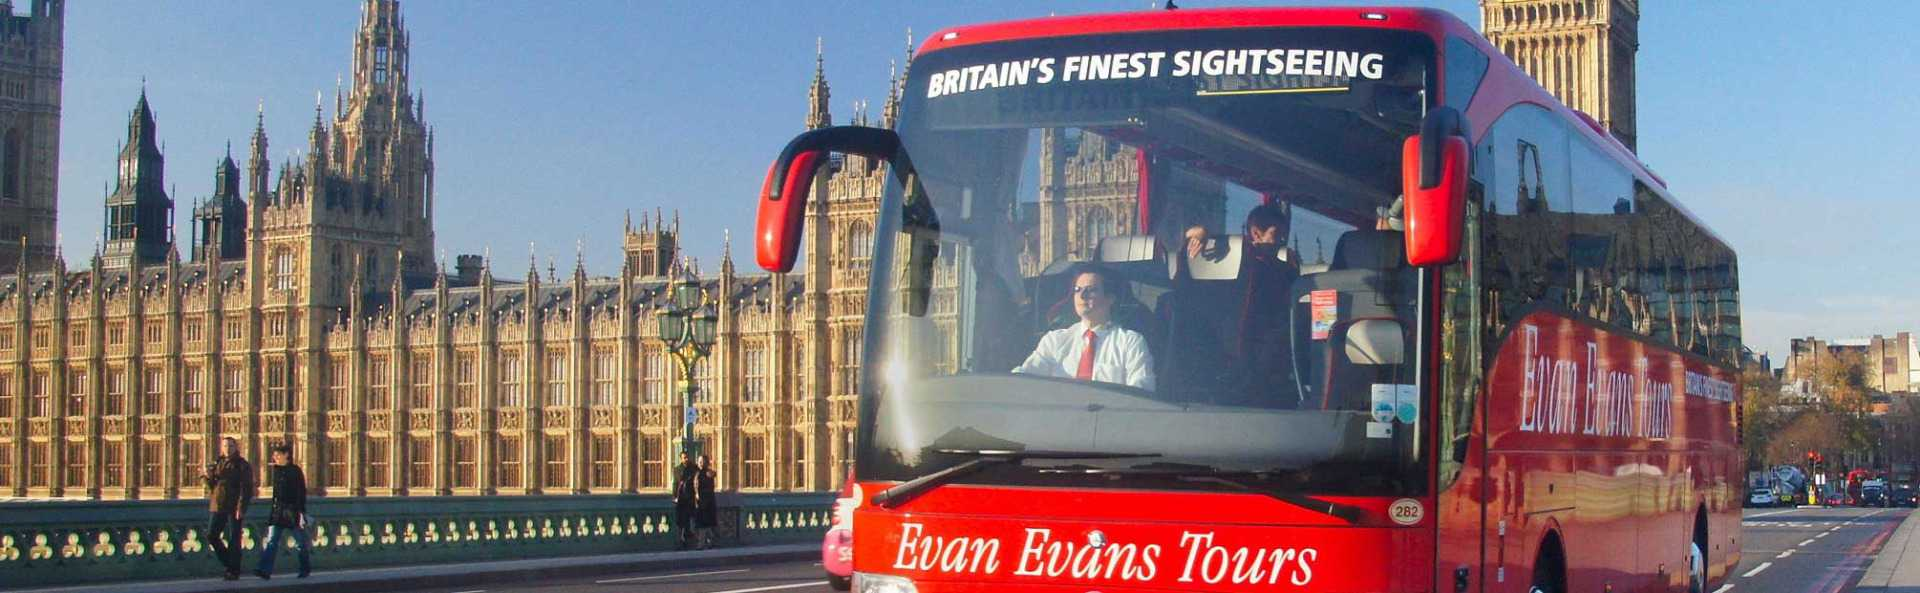 Evan Evans Tours Coach Parliament